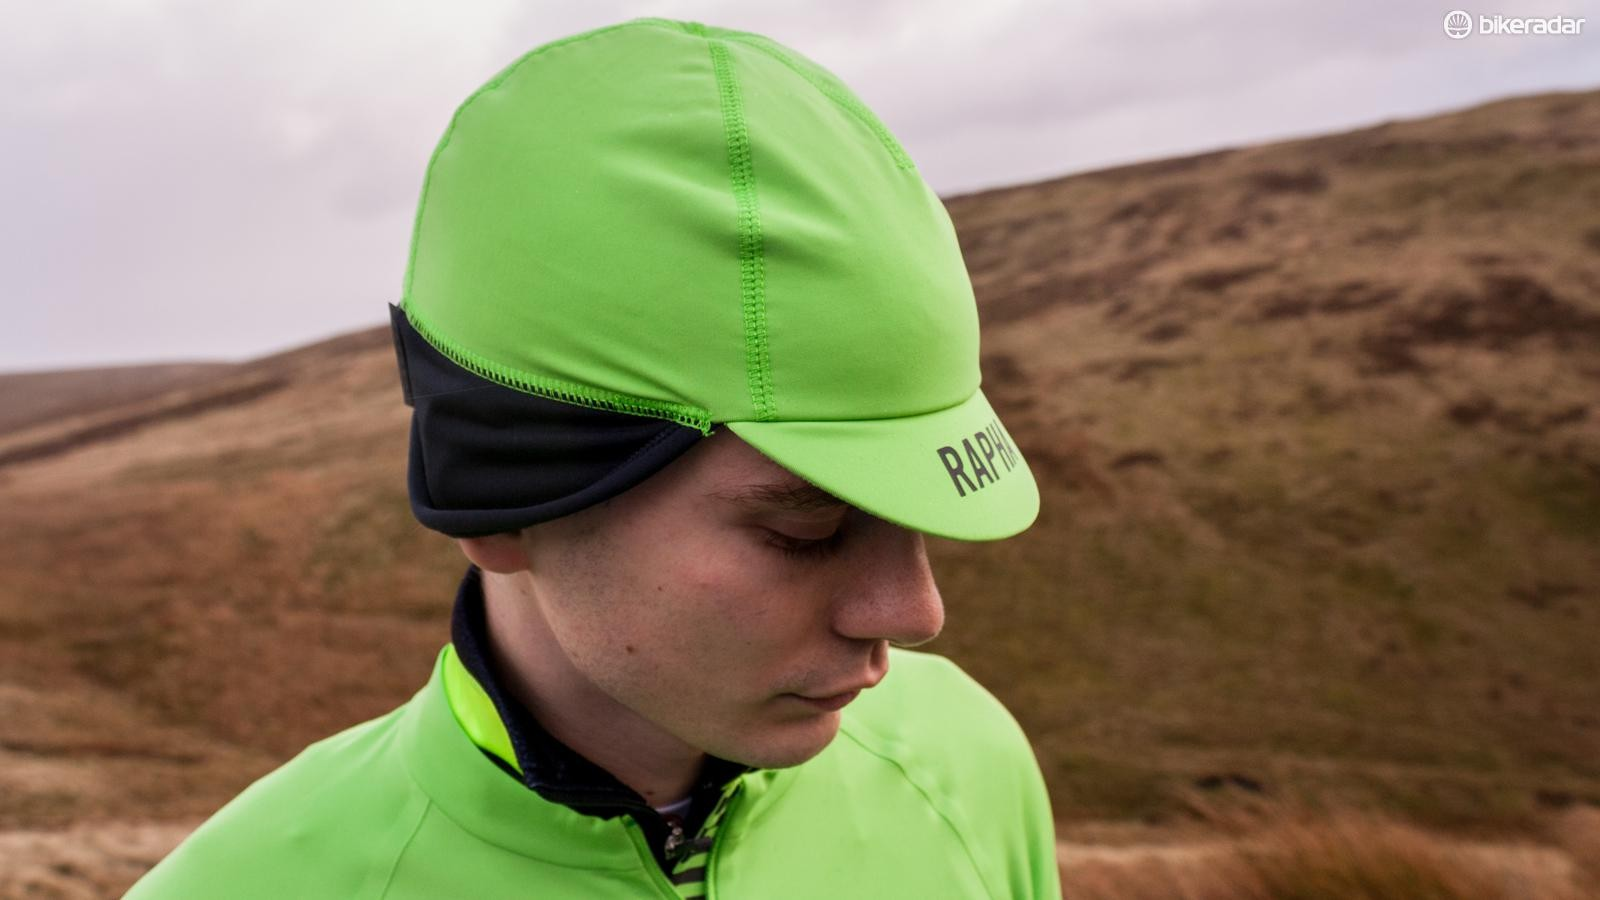 The Rapha Pro Team Winter Hat isn't perfect, but it's comfy and warm